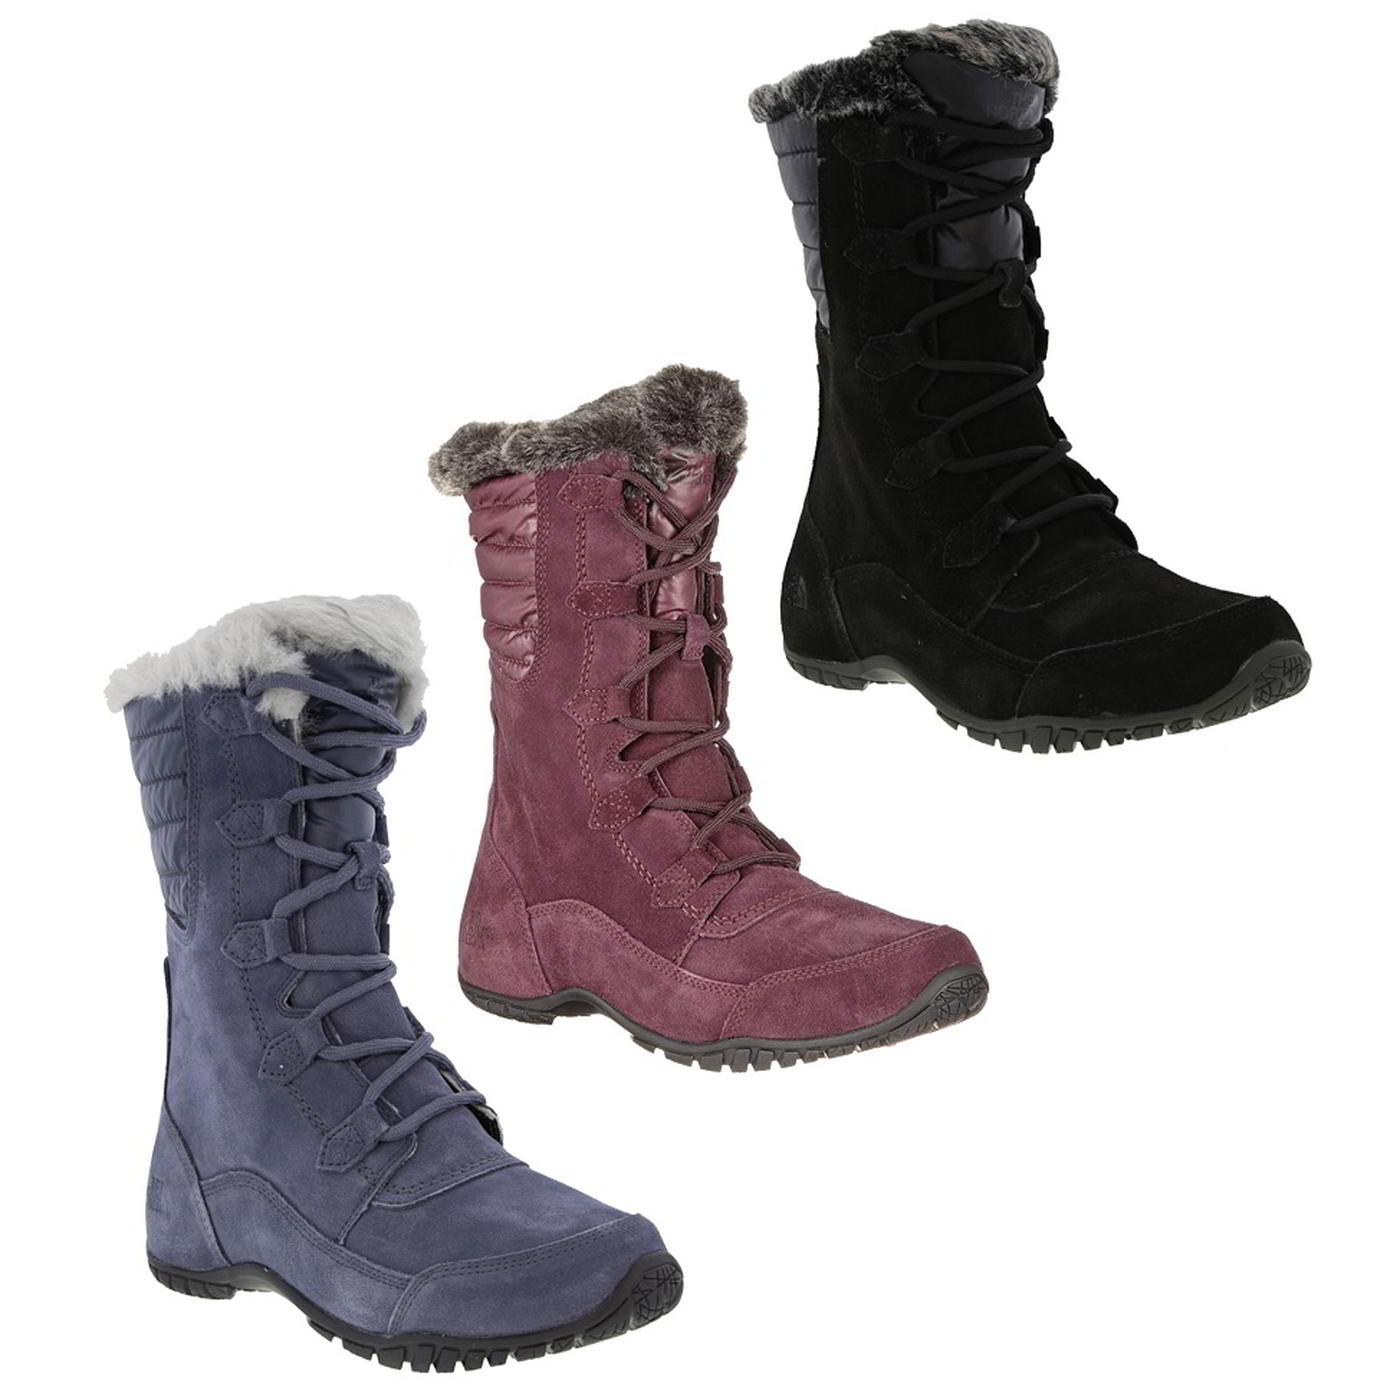 df07099ec Details about North Face Nuptse Purna II Womens Ladies Waterproof Walking  Snow Boots Size 5-8